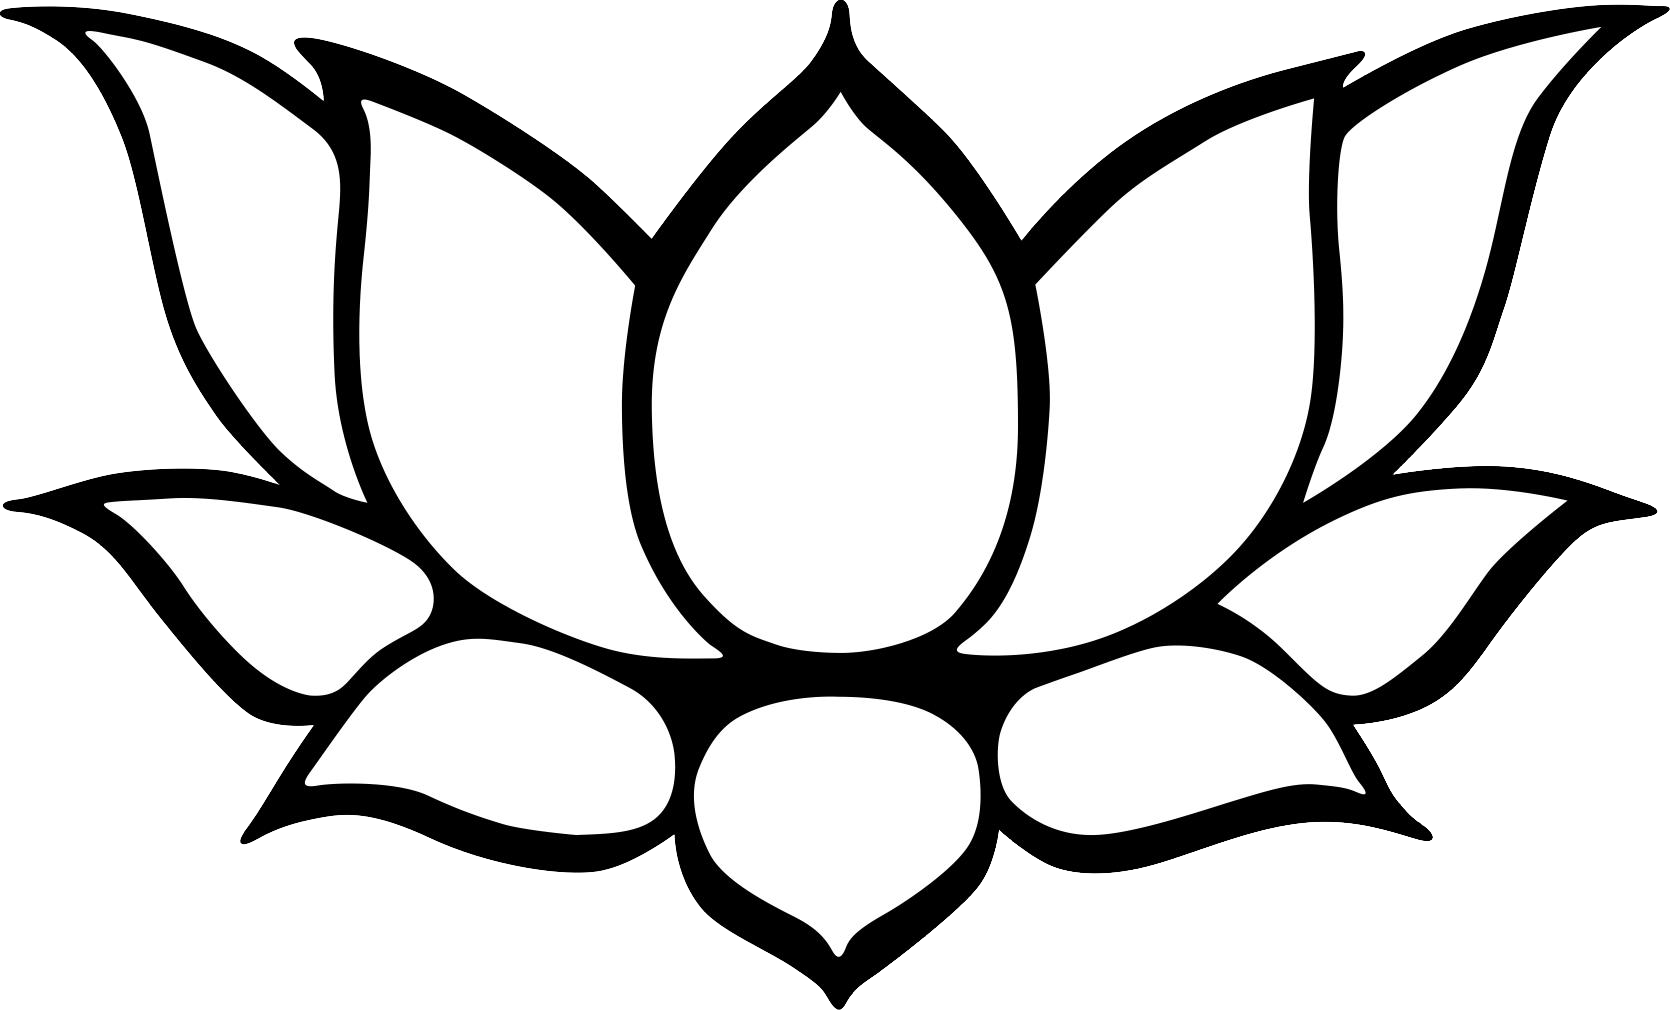 Schedule clipart black and white. Lotus flower symbol images